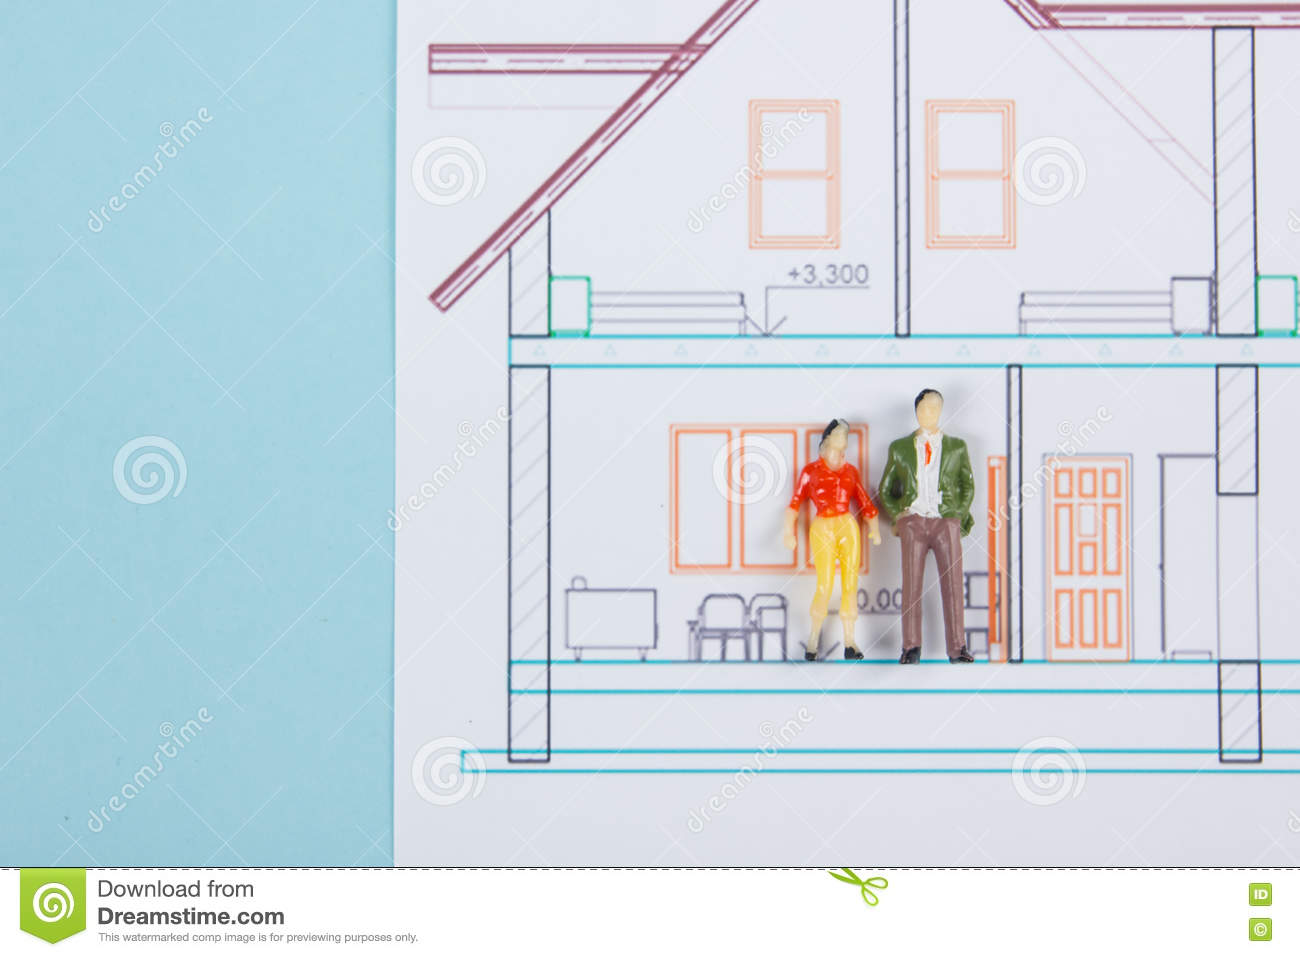 Real estate concept construction building blank speech bubbles download real estate concept construction building blank speech bubbles people toy figures malvernweather Image collections